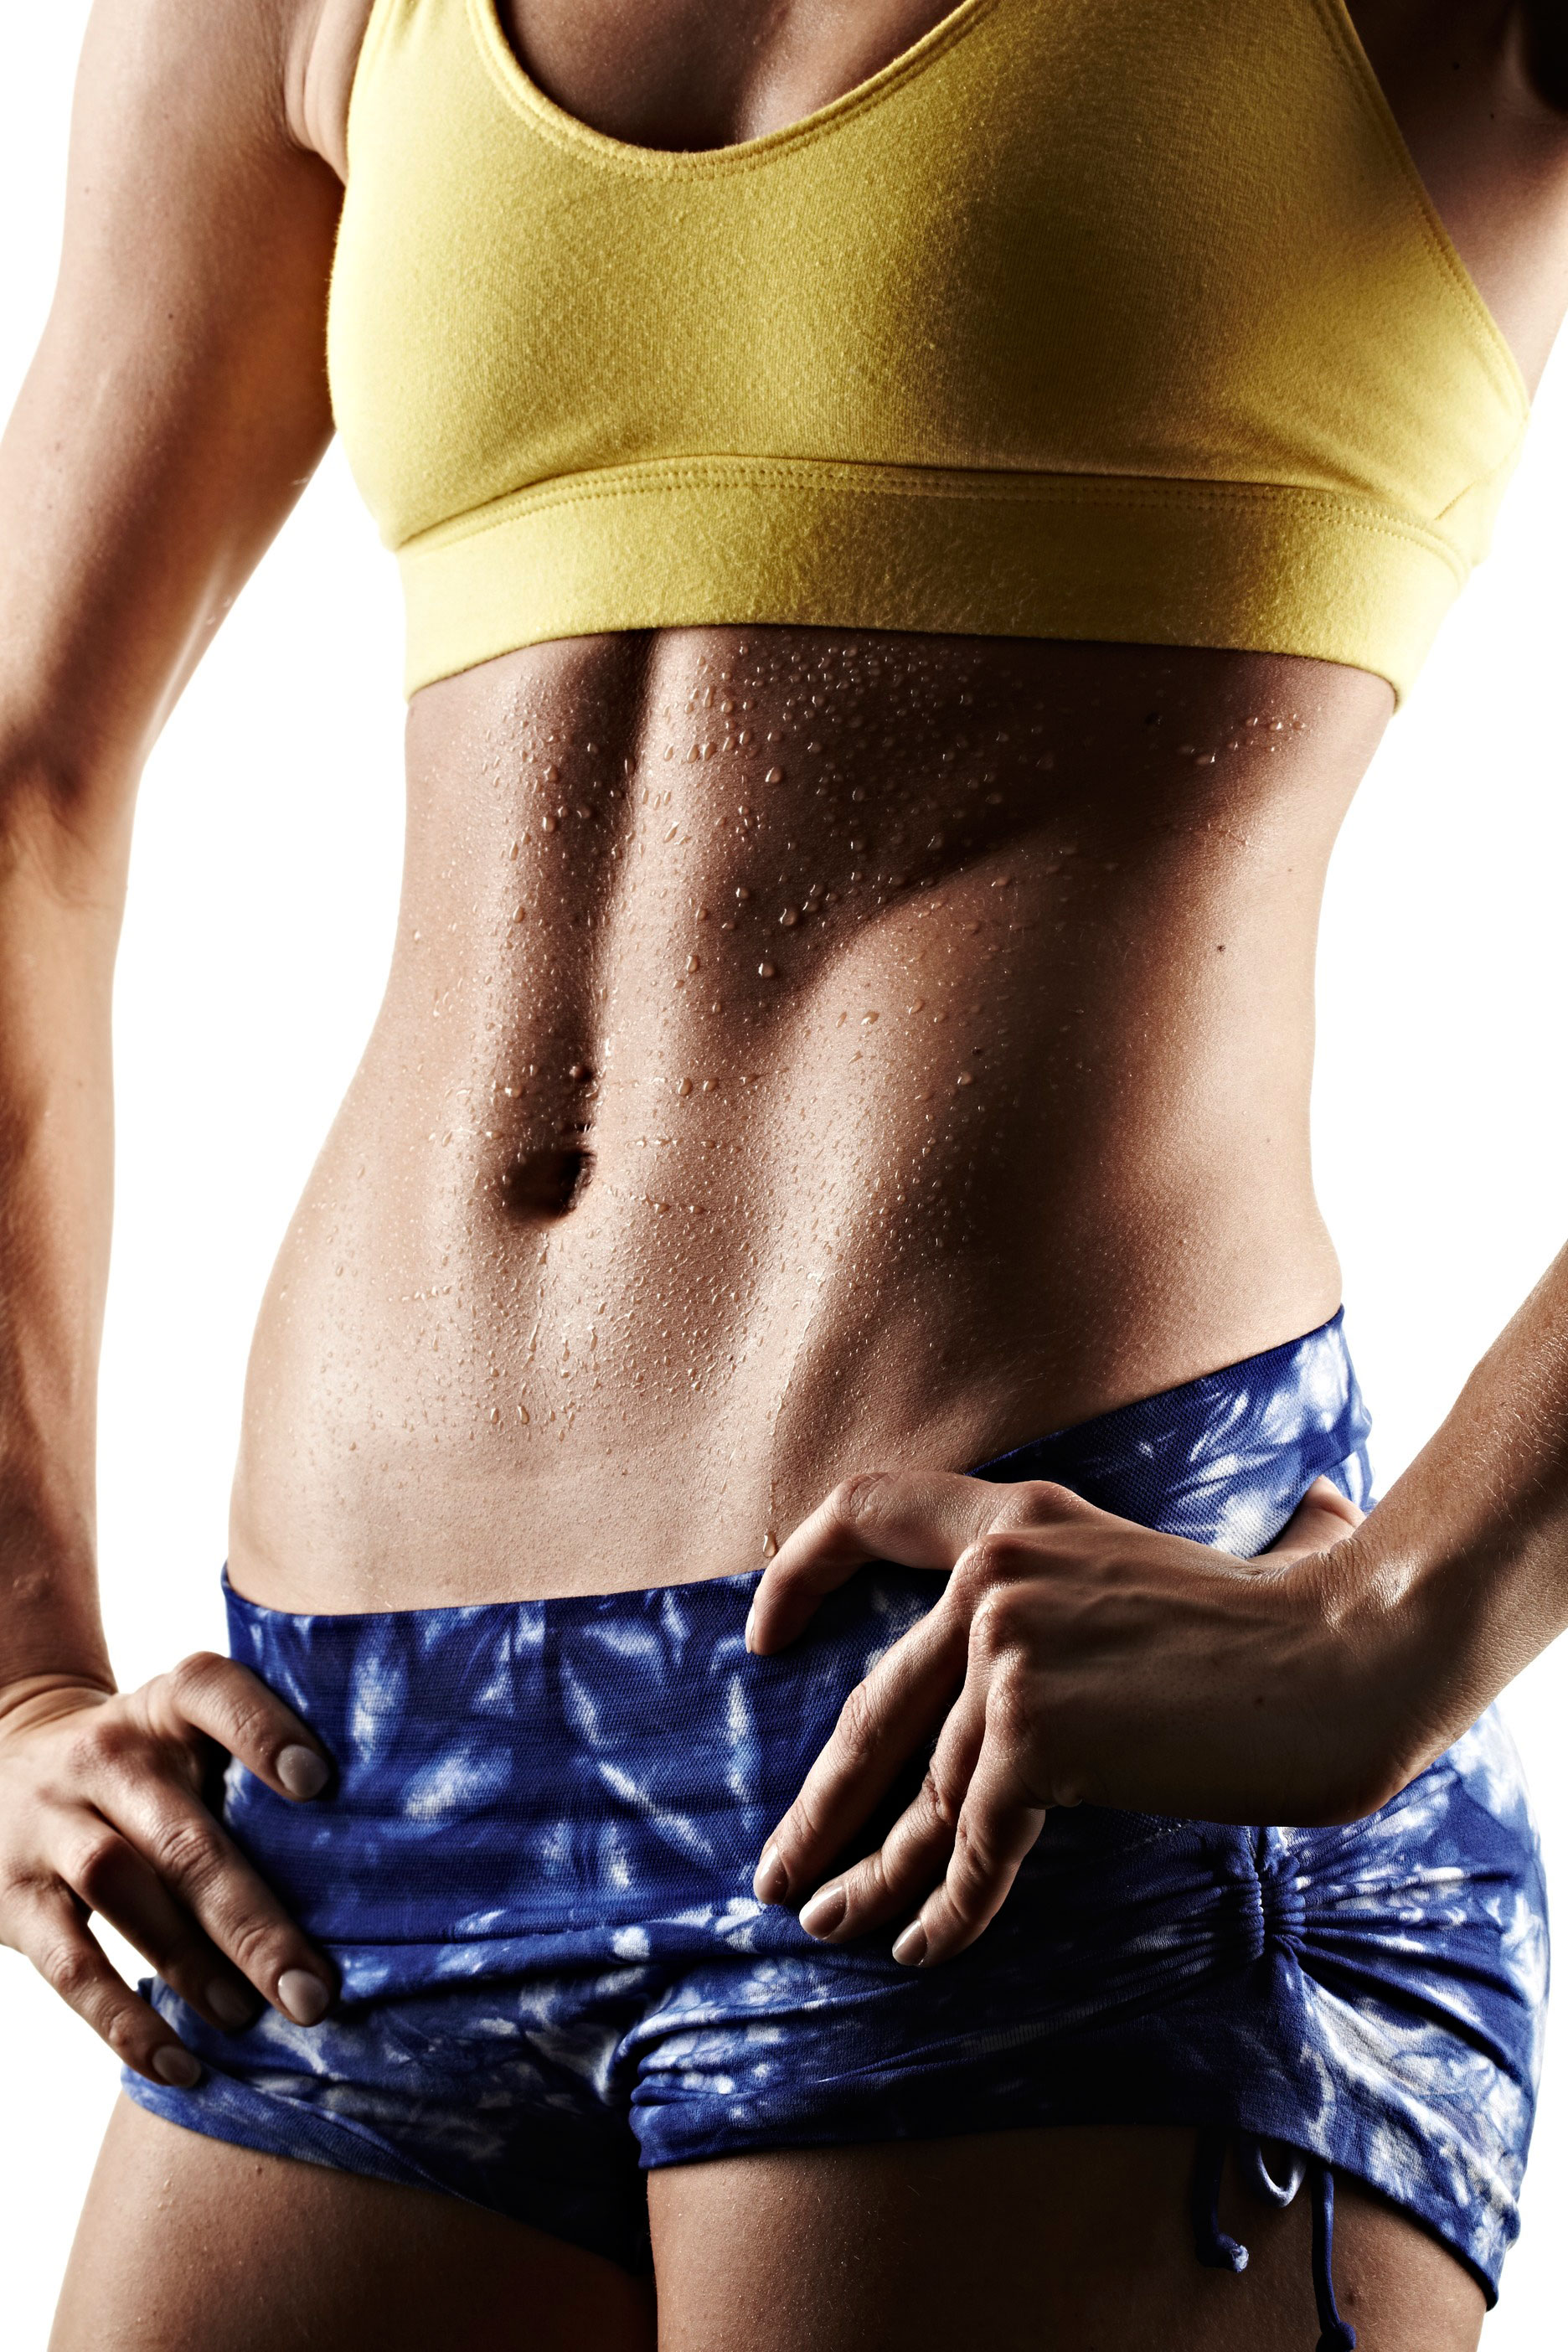 Core Essentials: How to Trim Your Waist